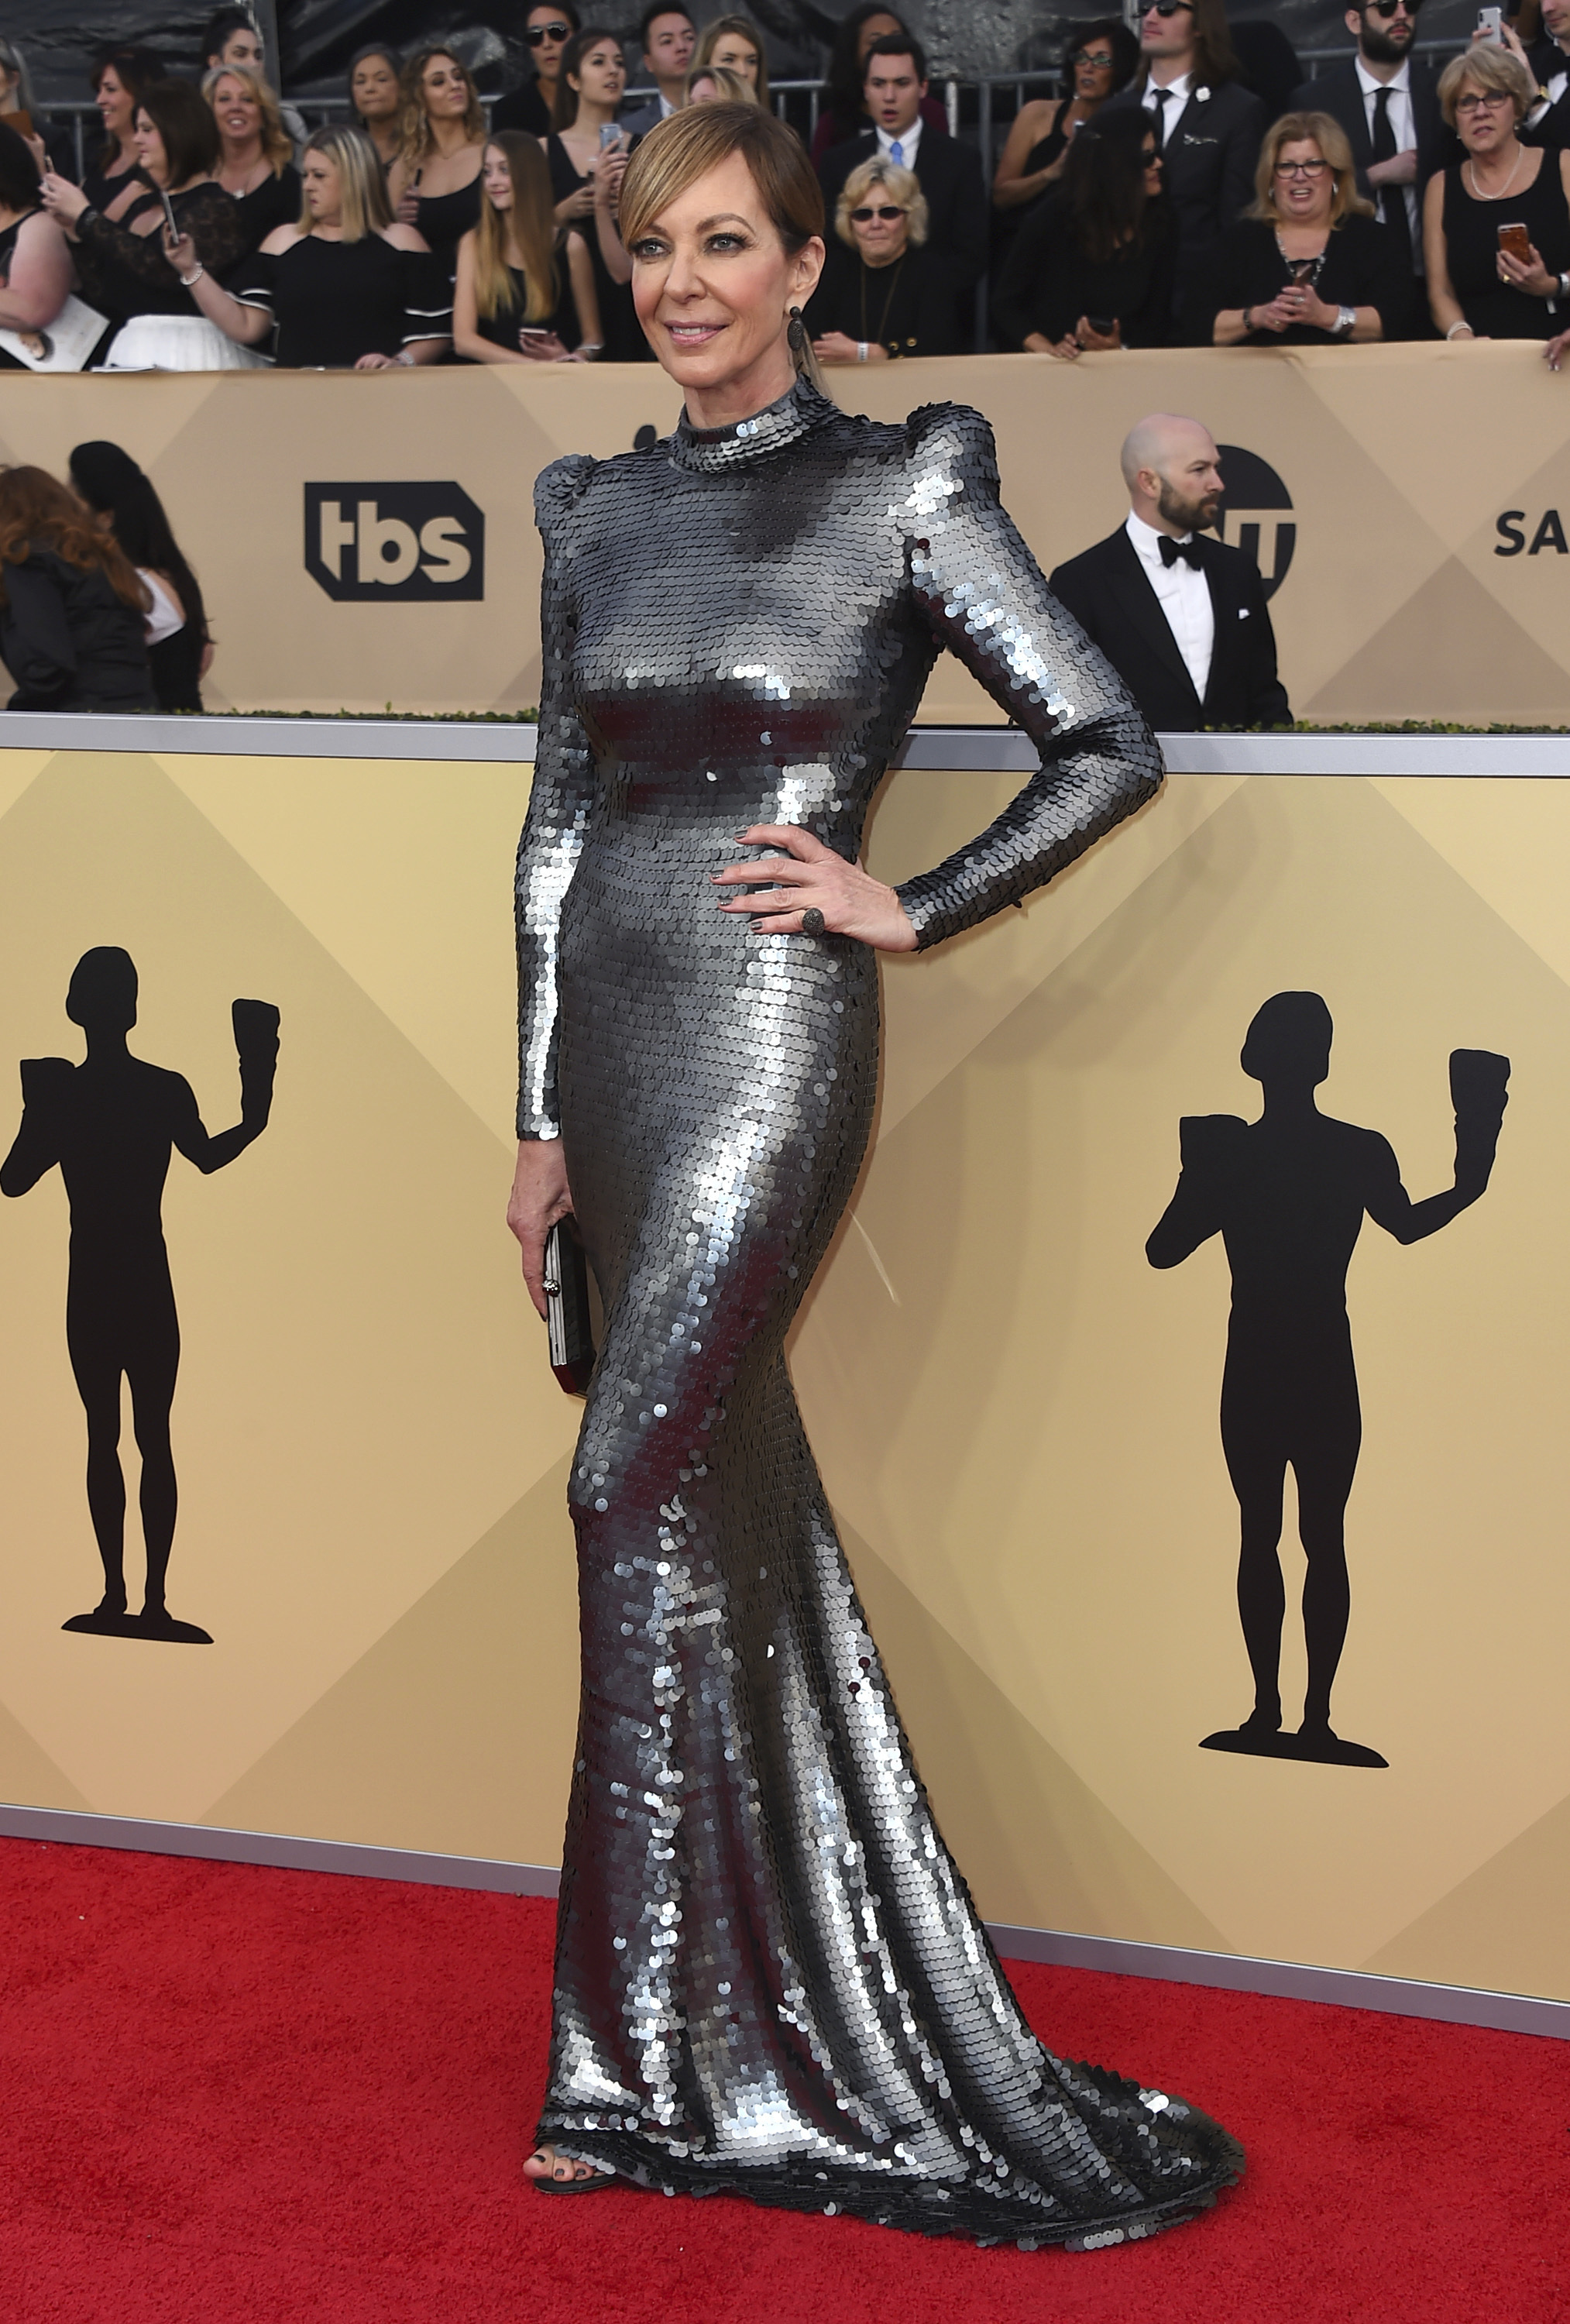 Allison Janney arrives at the 24th annual Screen Actors Guild Awards